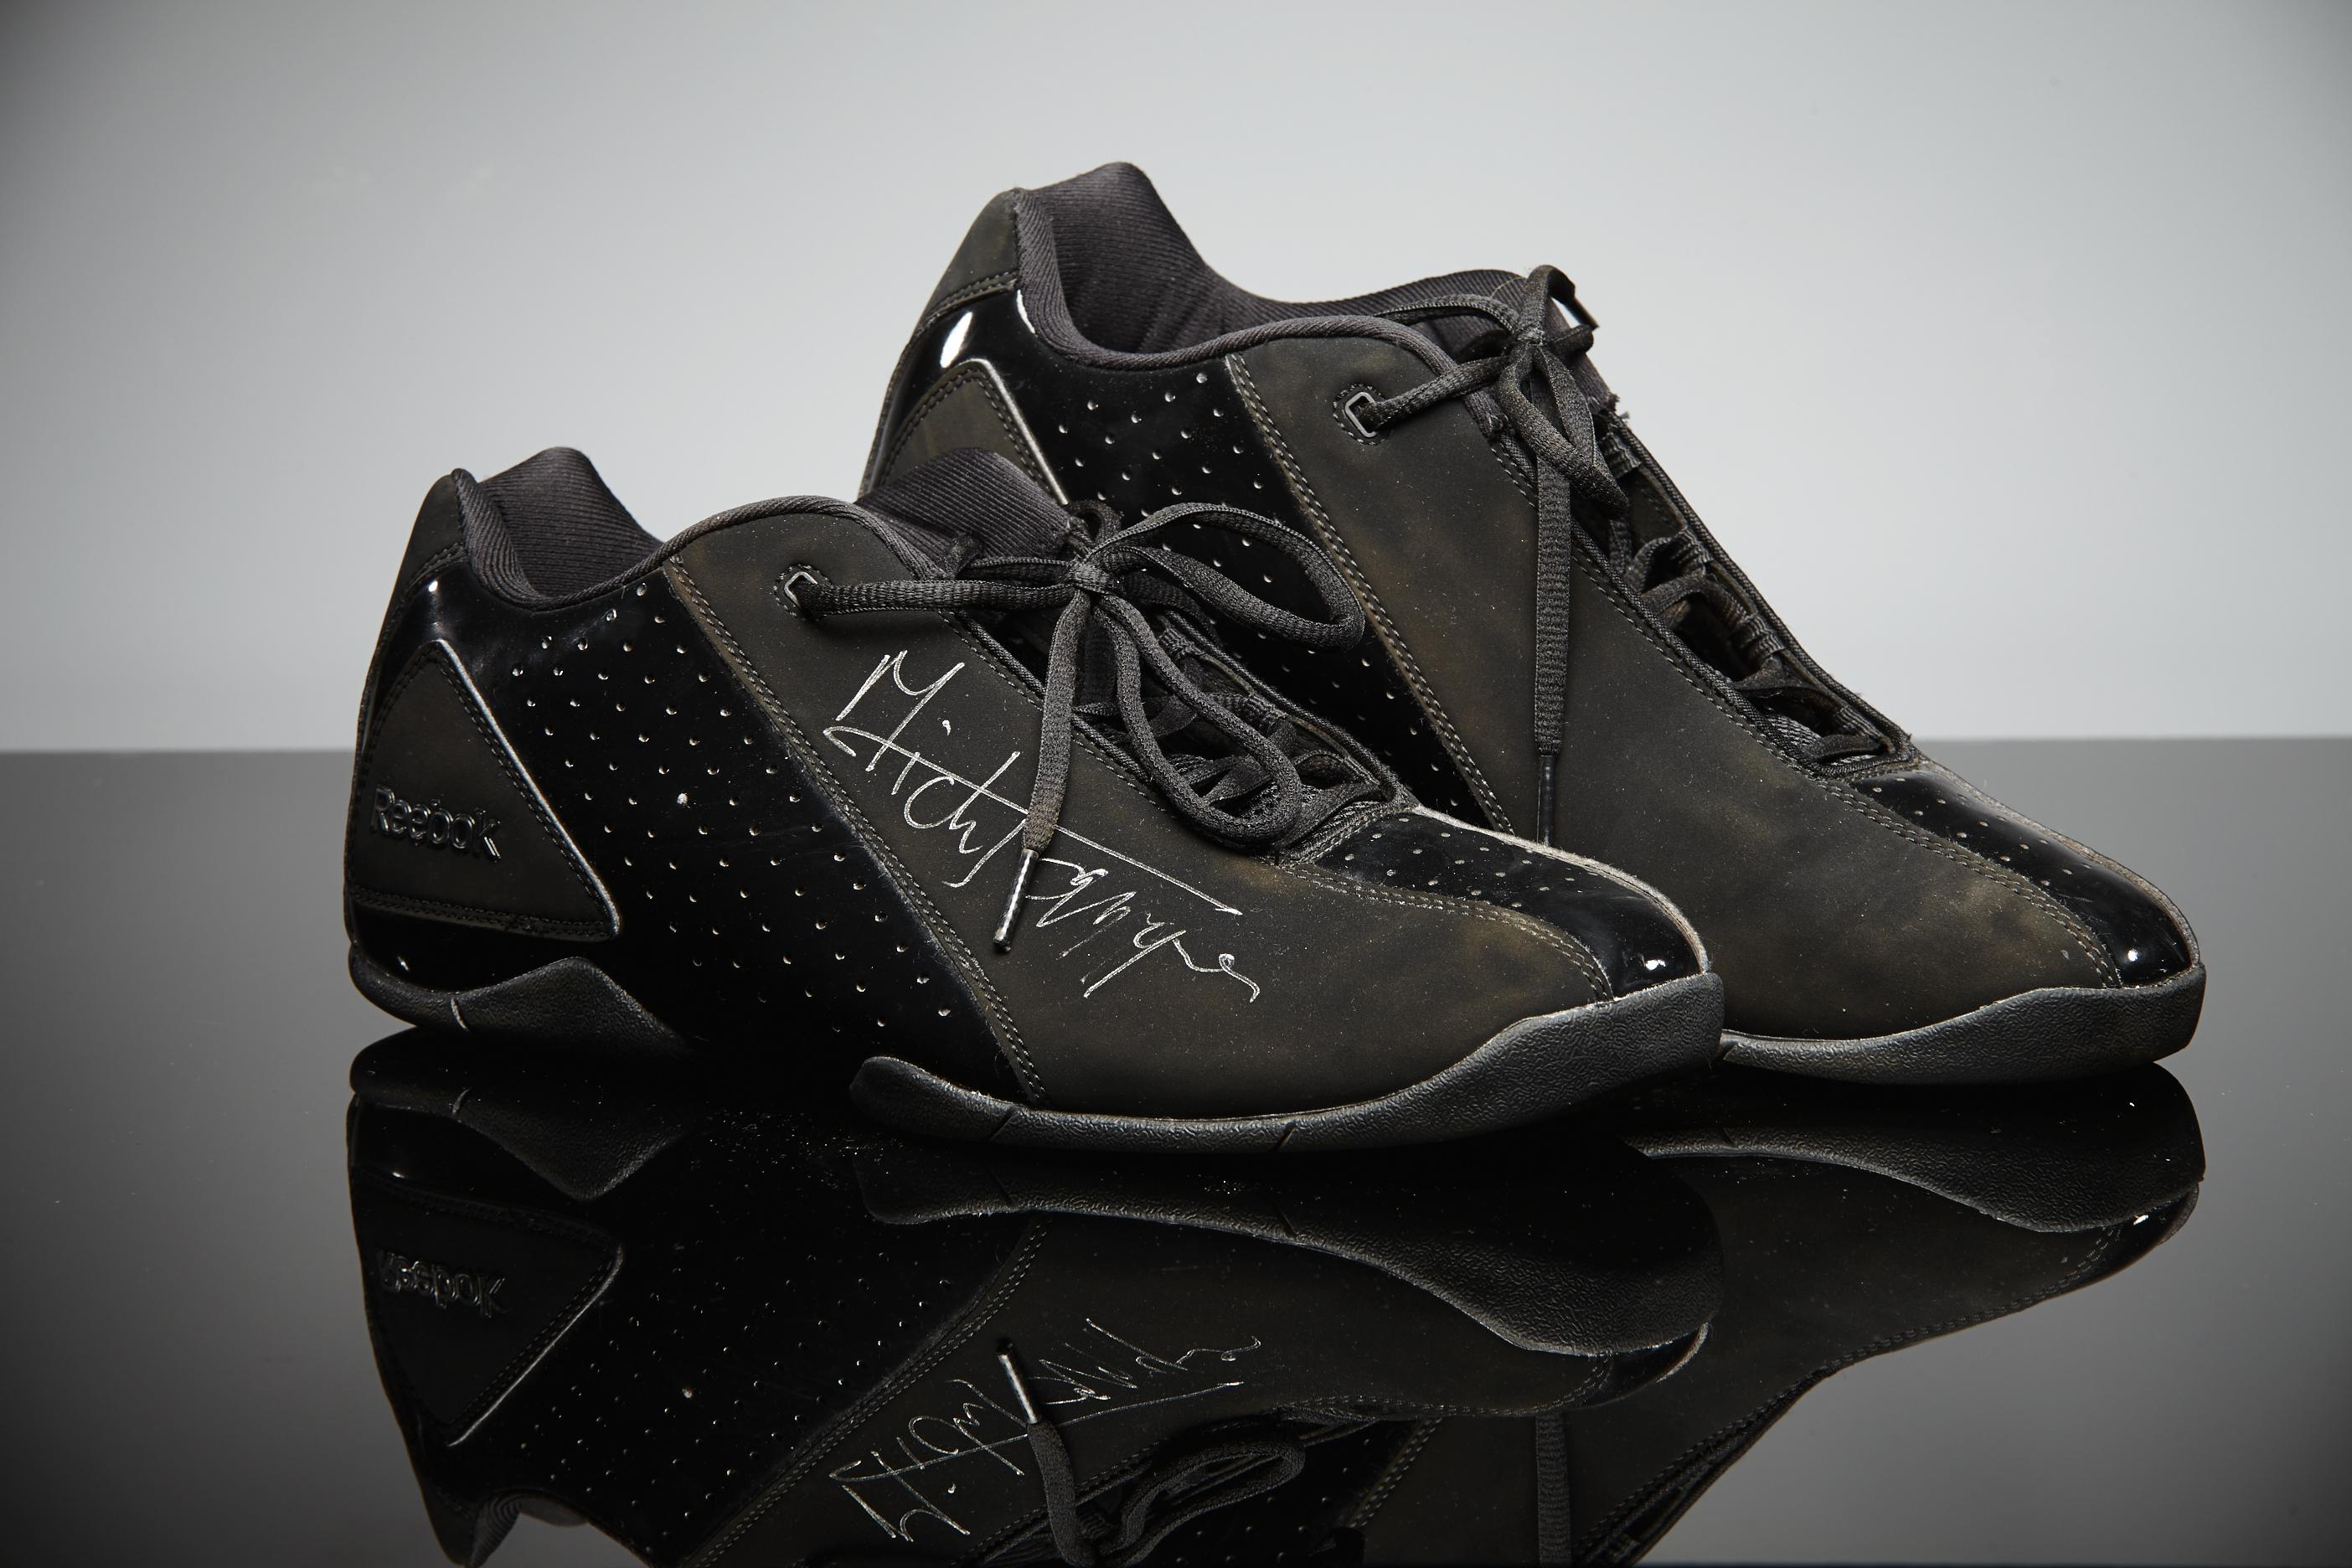 Mick wore these shoes during the Rolling Stones' incredible Glastonbury set!